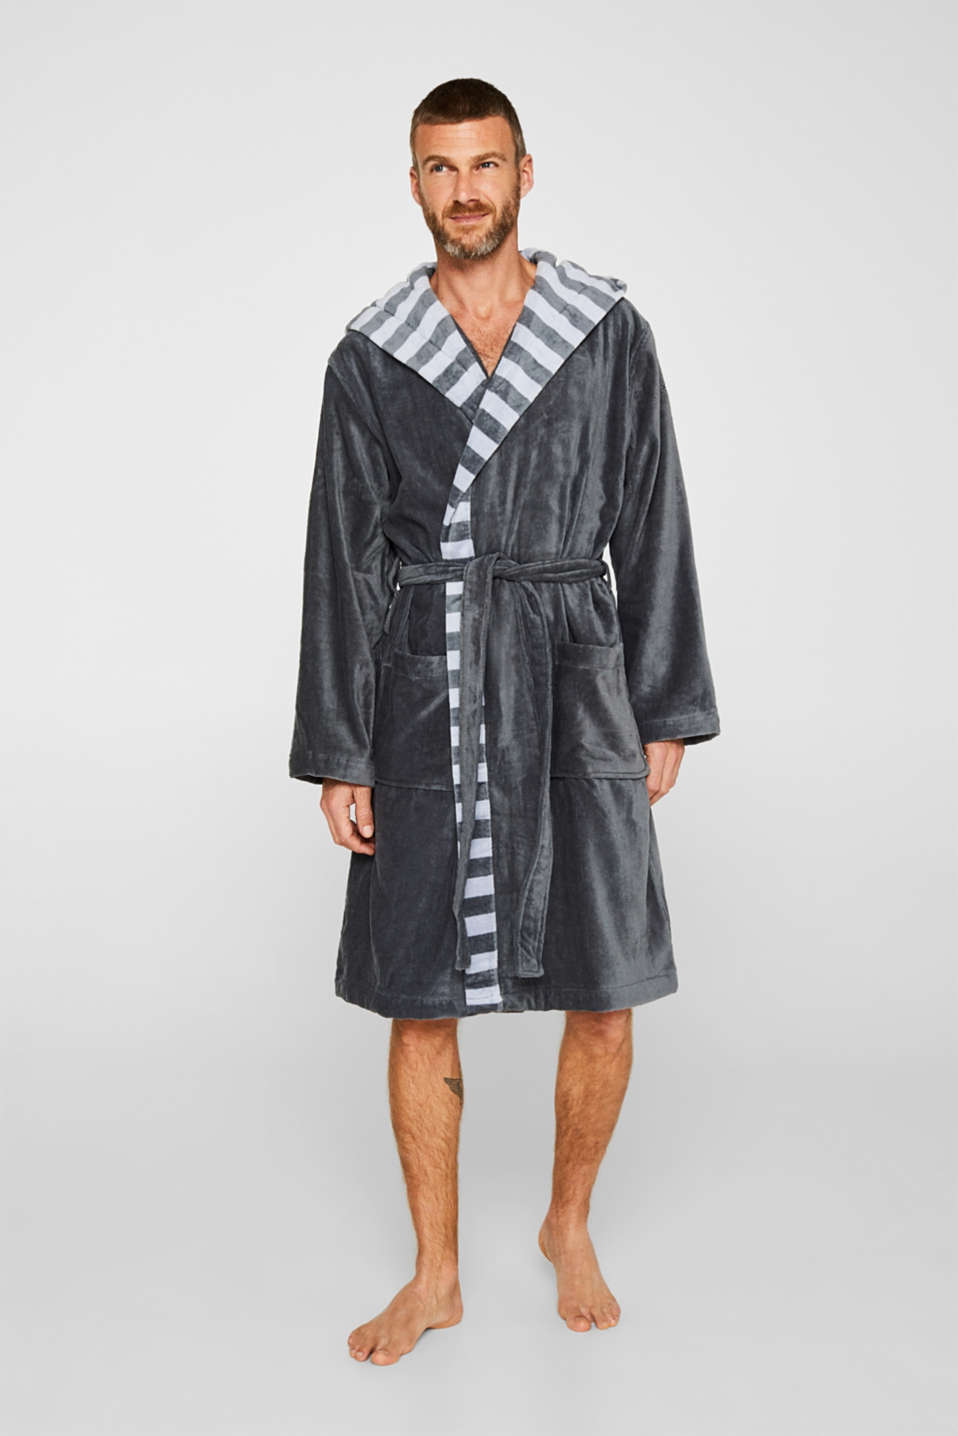 Mens striped bathrobe, 100% cotton, GREY STEEL, detail image number 1